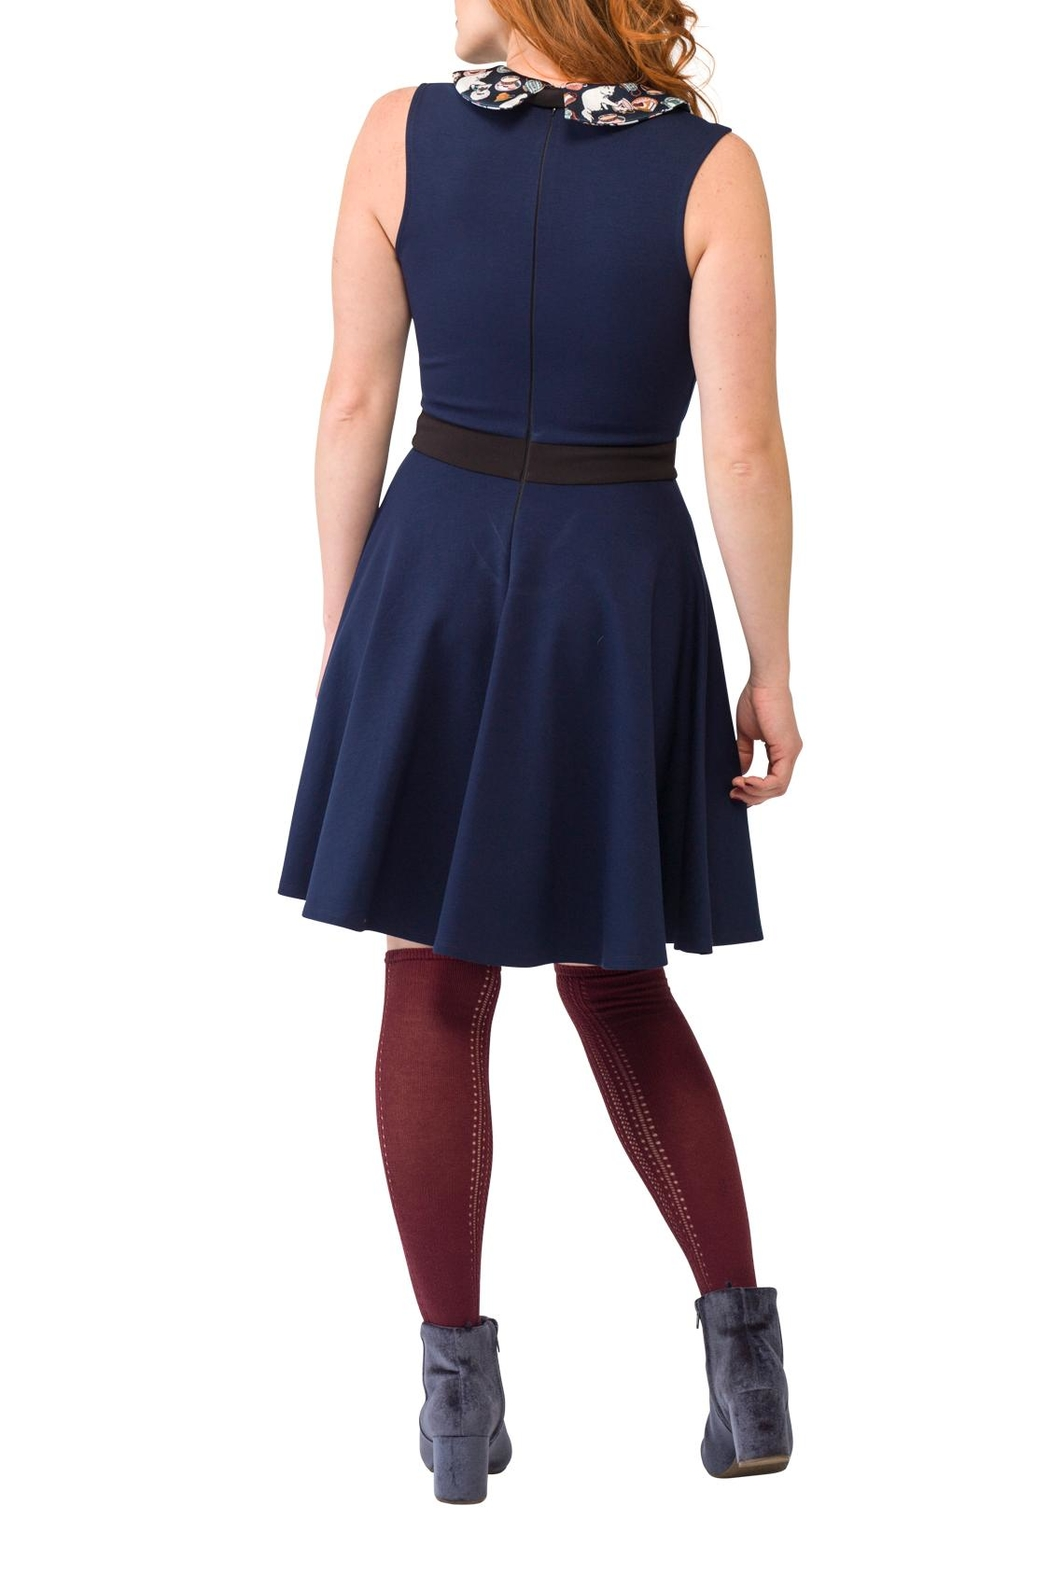 Smak Parlour Cat Collared Dress - Side Cropped Image